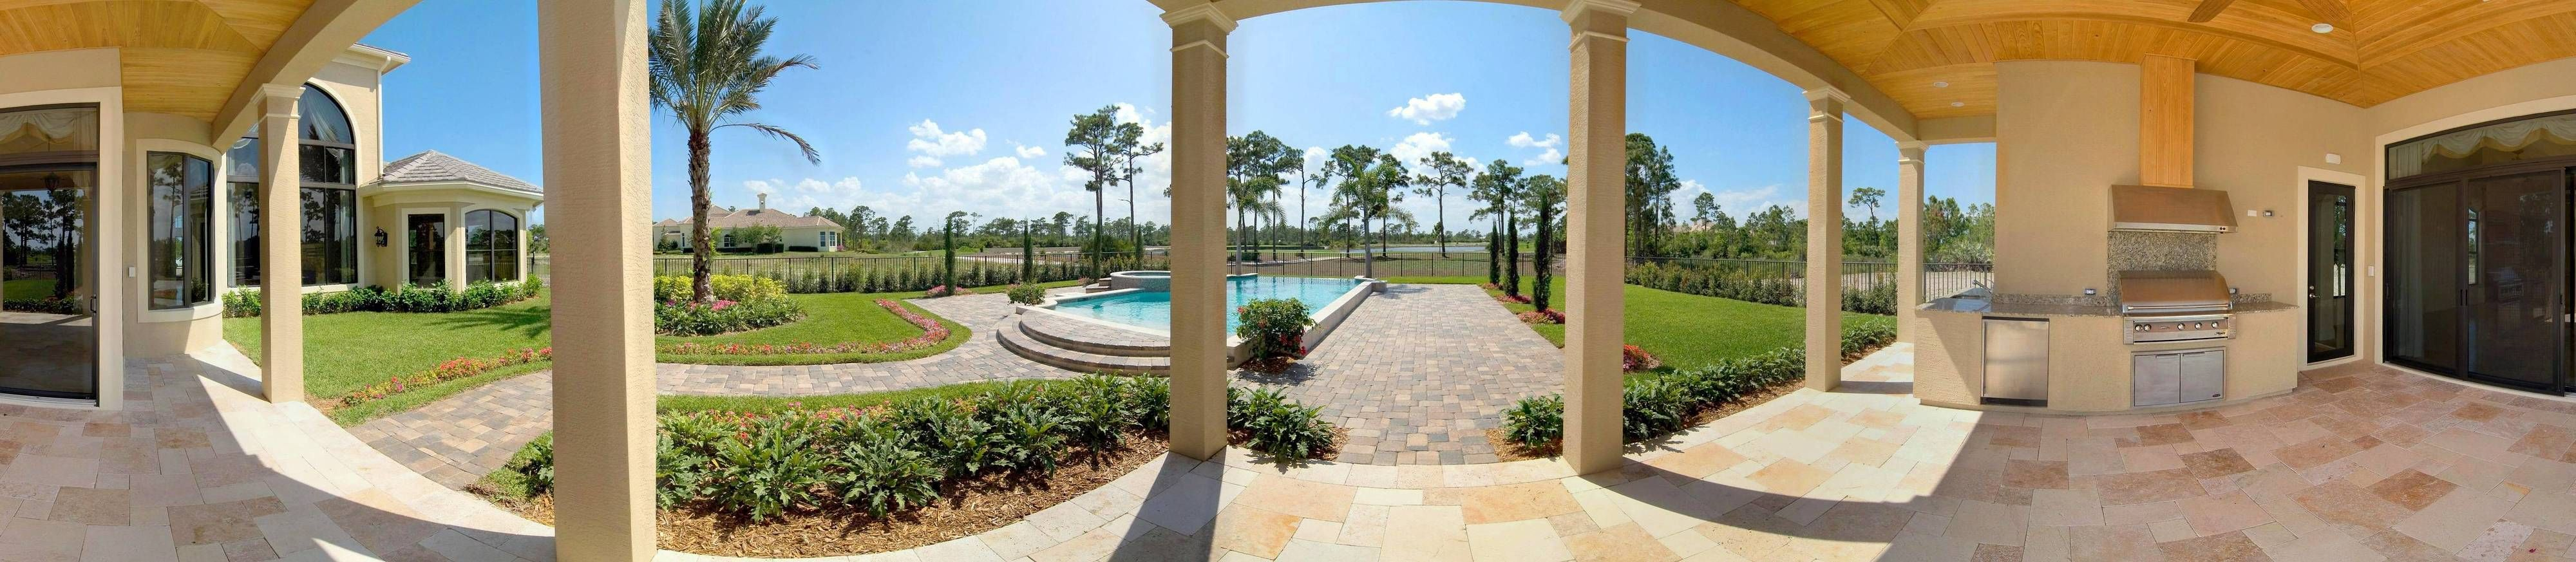 1st Floor Rear Covered Patio & Pool